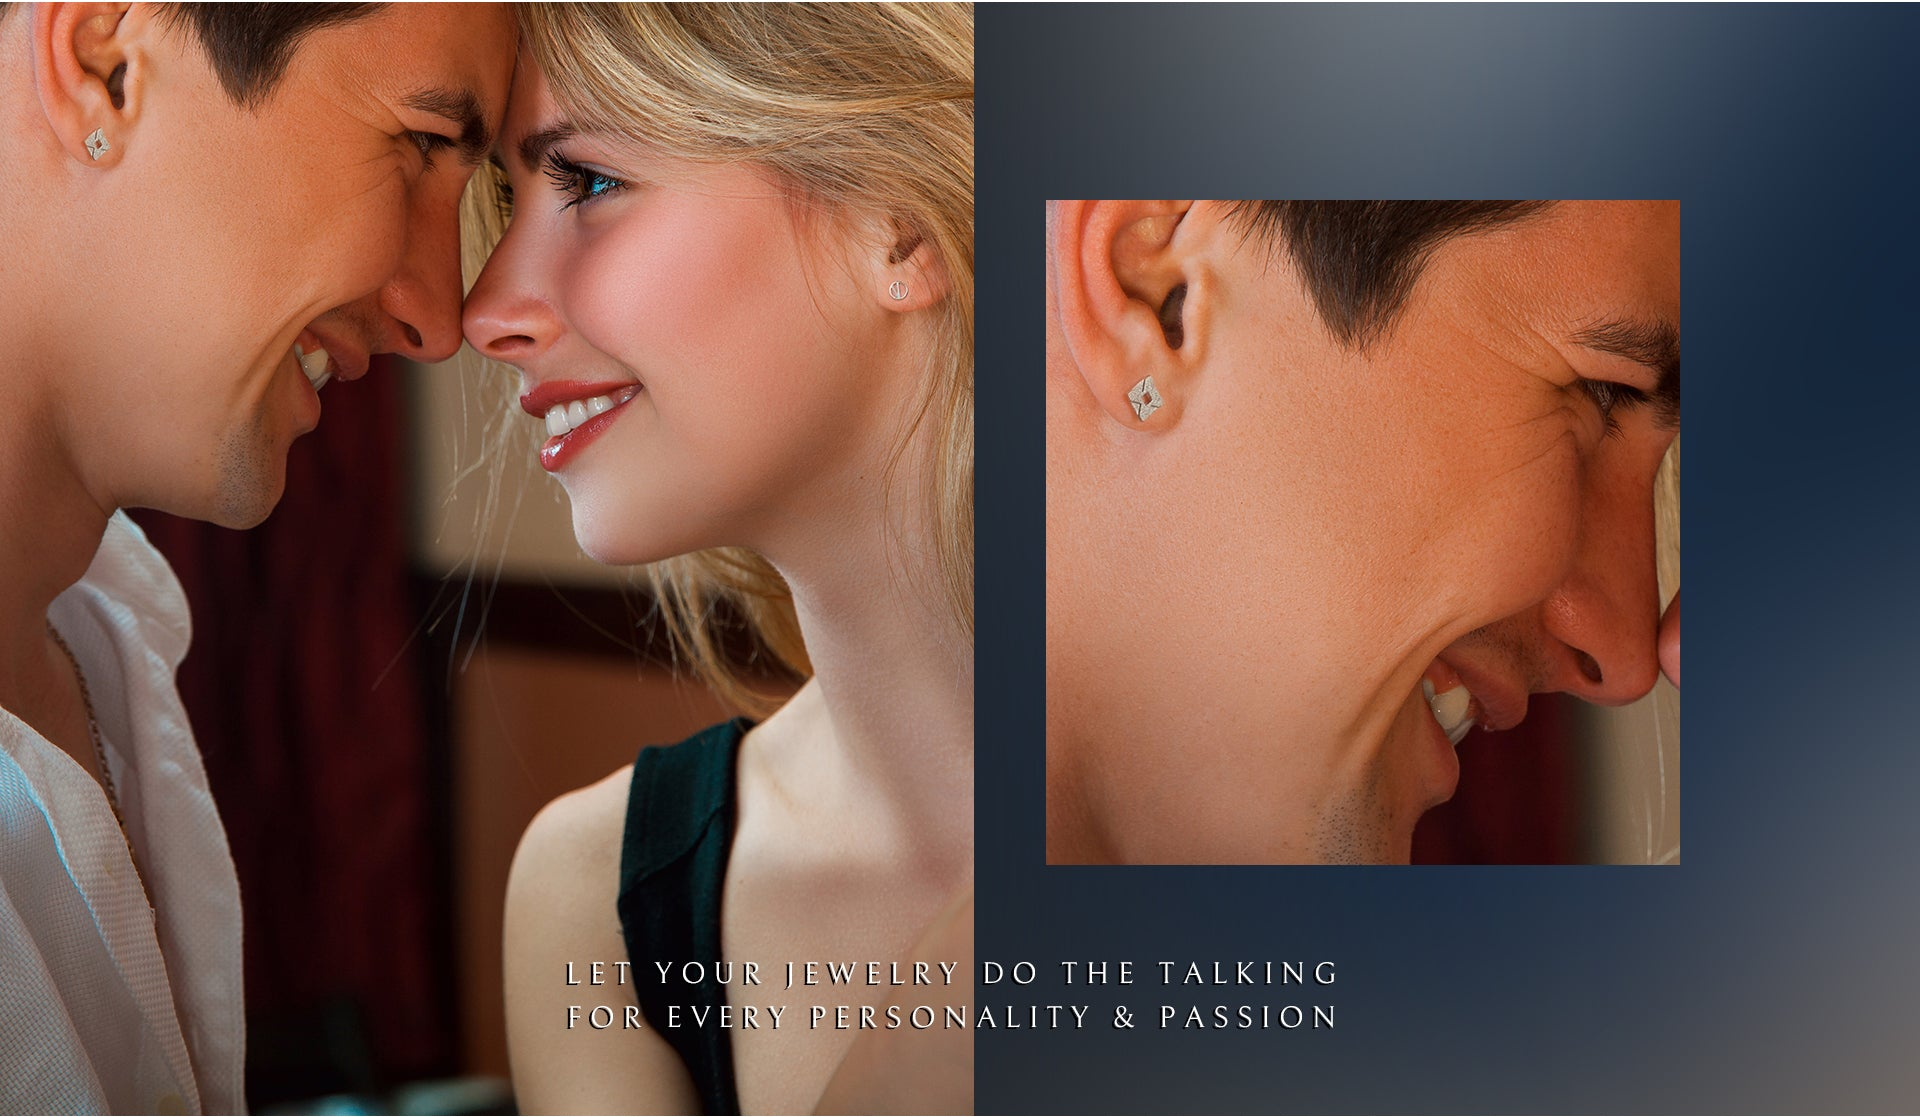 let your jewelry do the talking